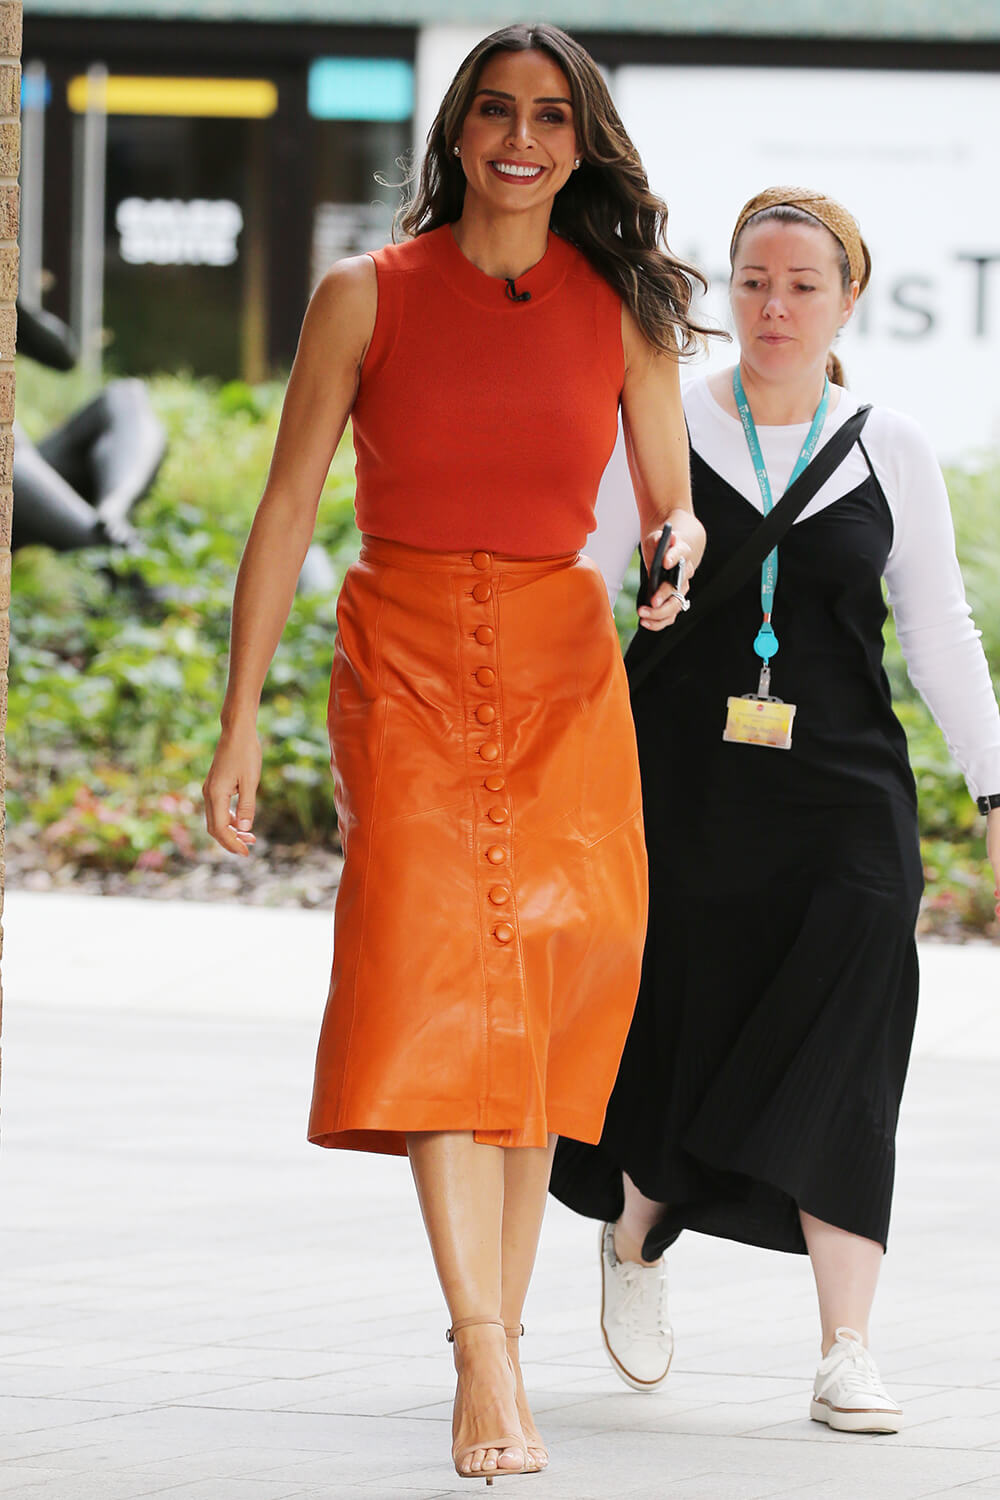 Christine Bleakley at ITV Studios